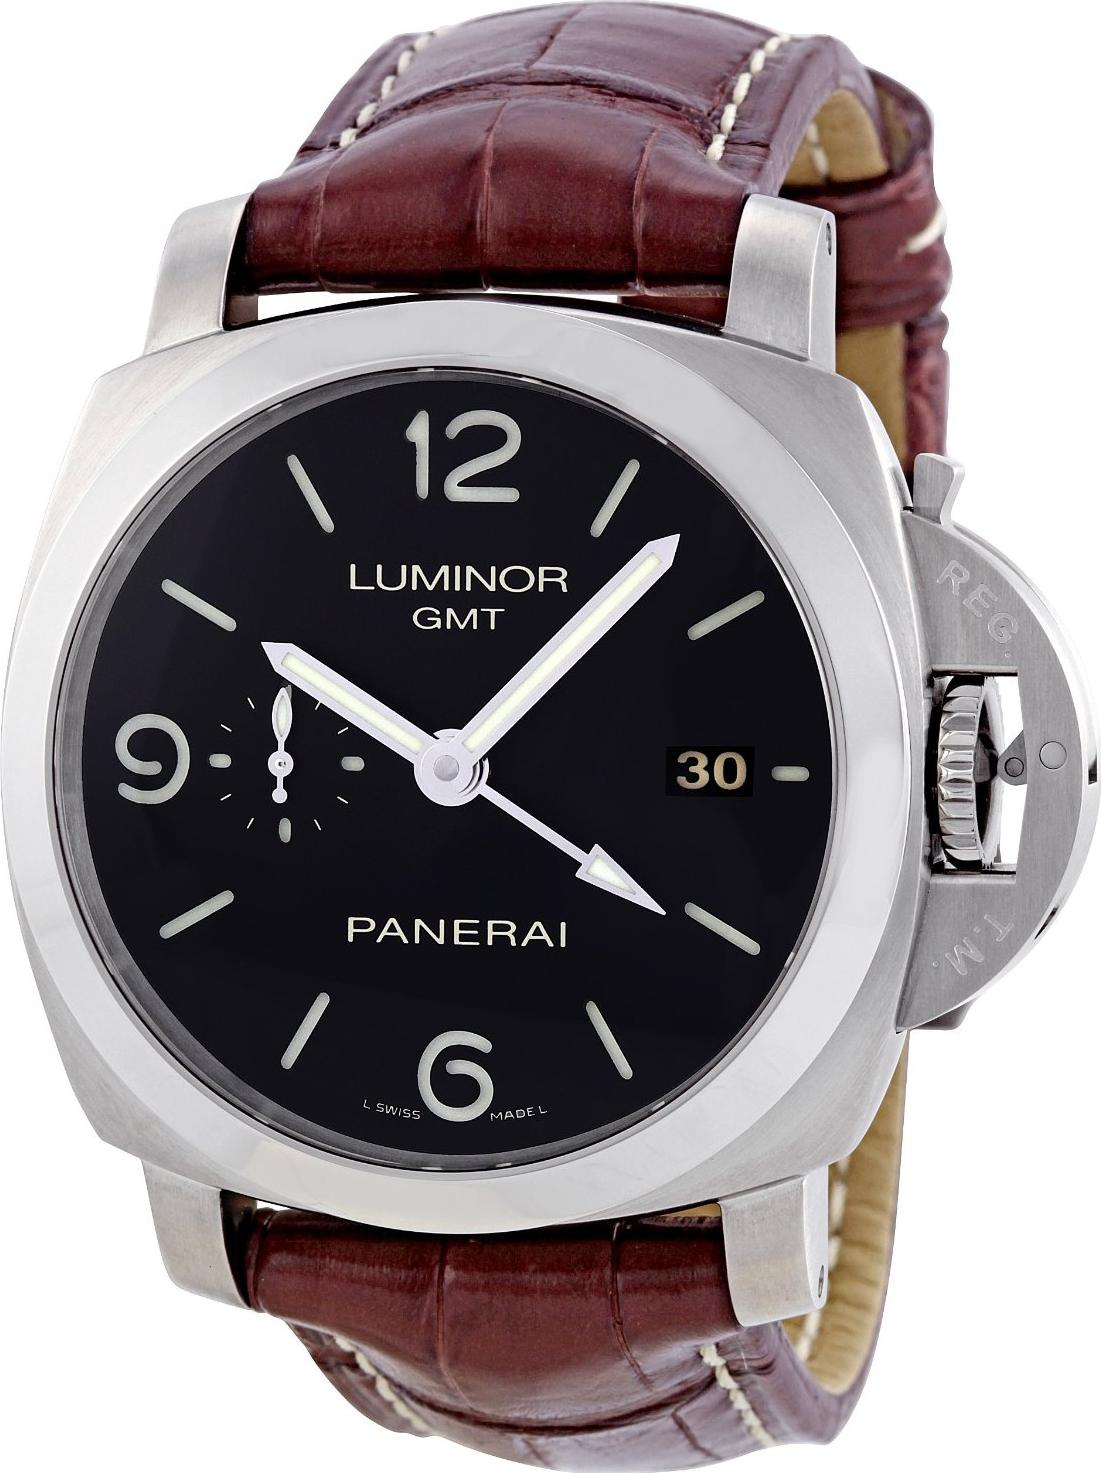 Panerai Luminor 1950 Actual Size Image